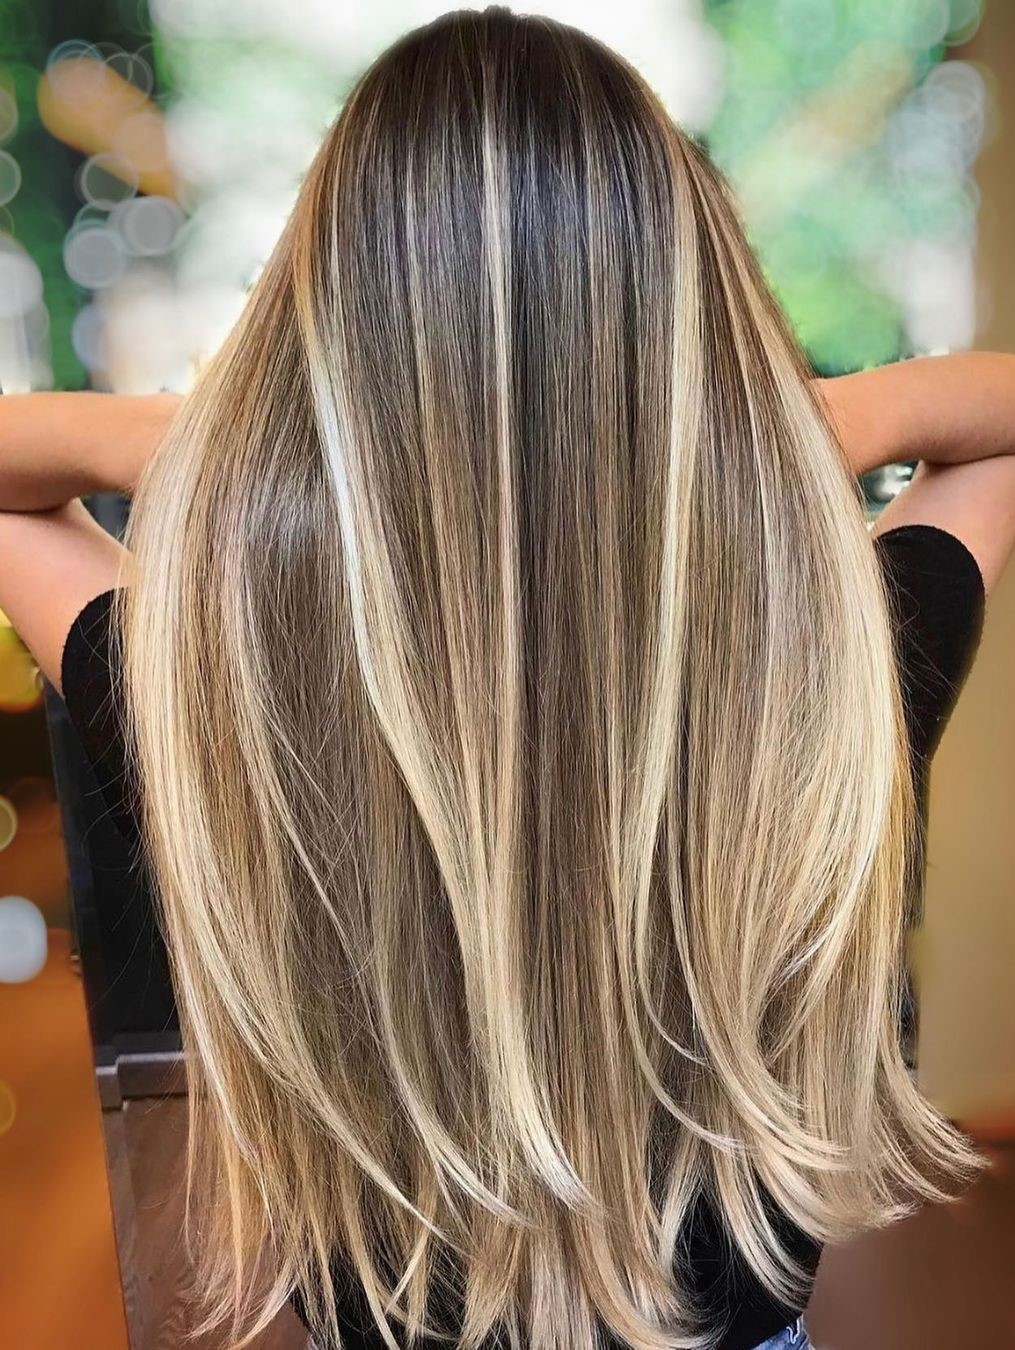 Straight Brown and Blonde Hair